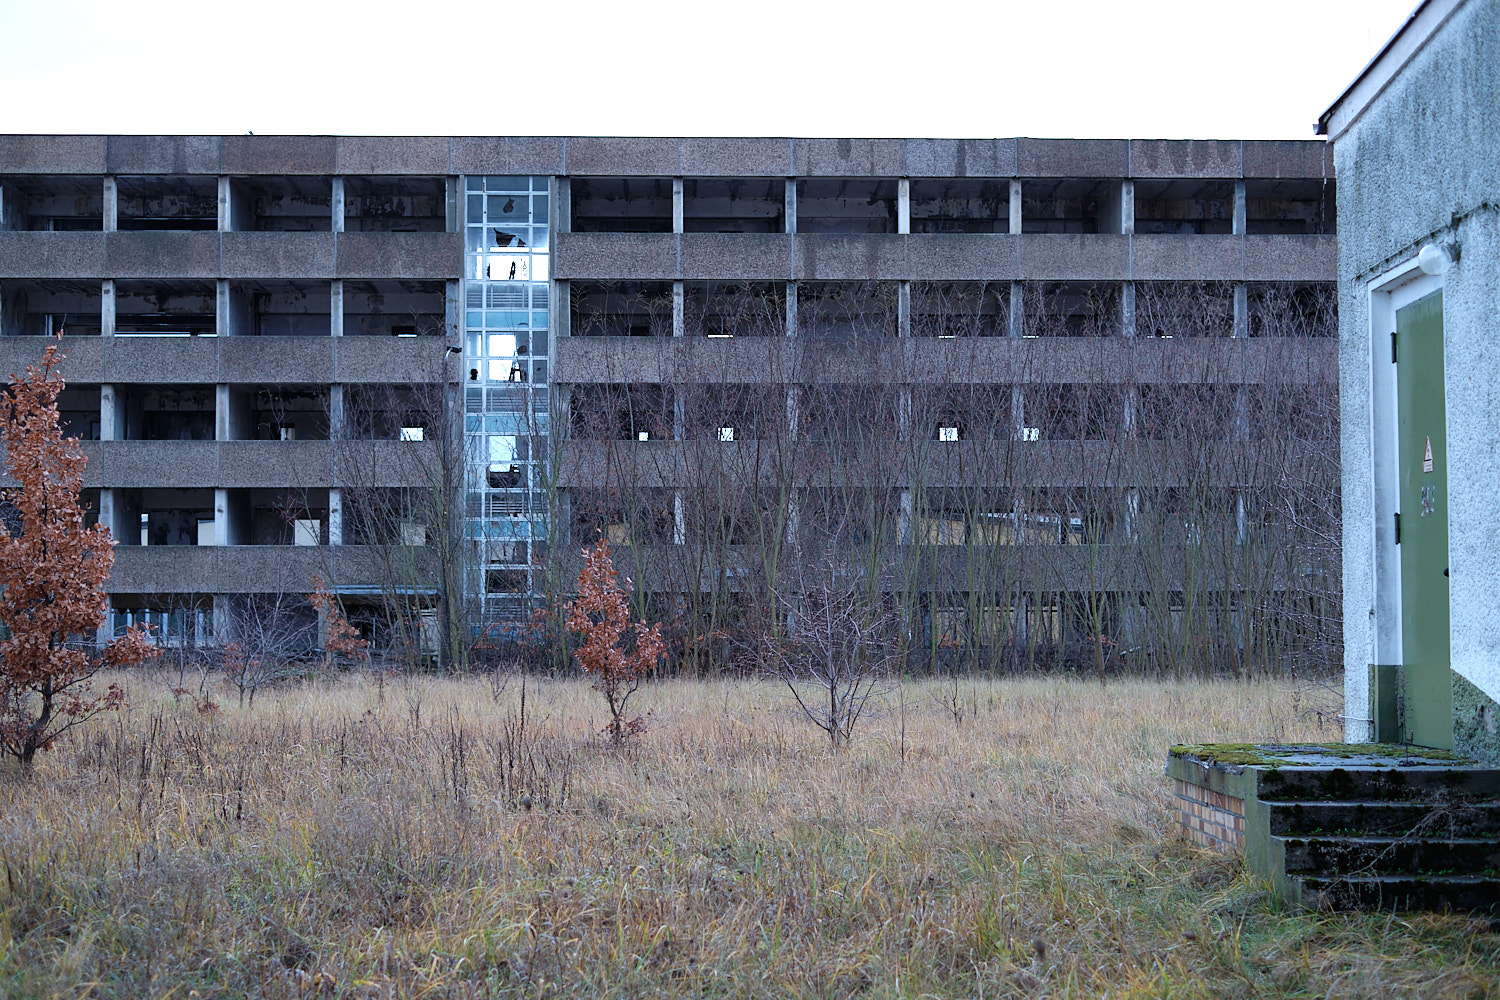 Winter equinox dimmed light at Felchowsee, Uckermarkt. Abandoned military facilities